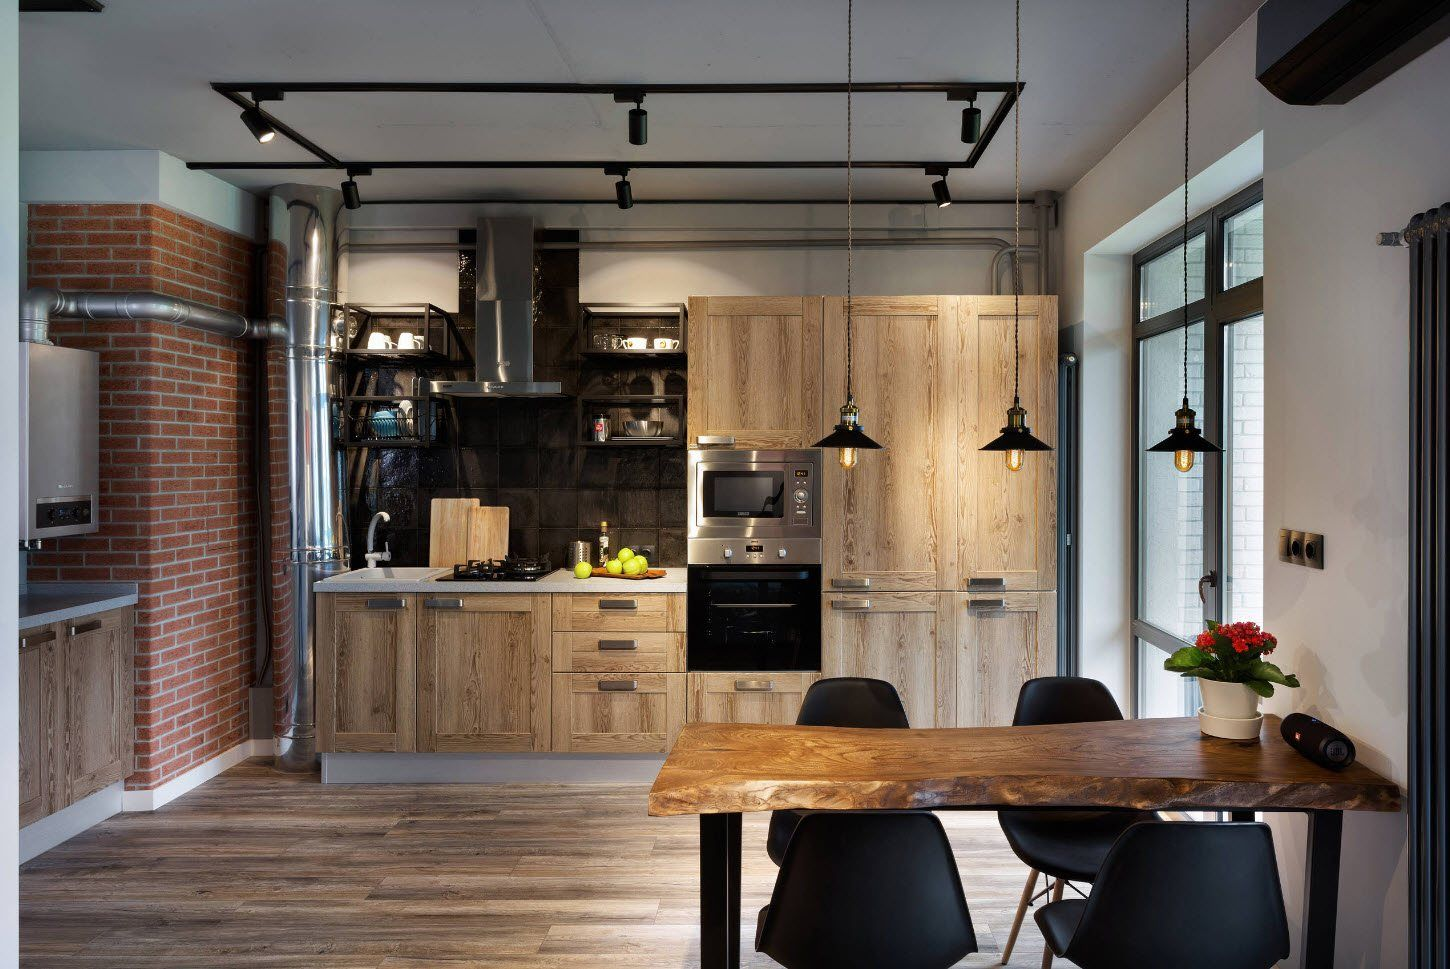 Fusion and Loft touch for modern styled kitchen with natural materials for trimming